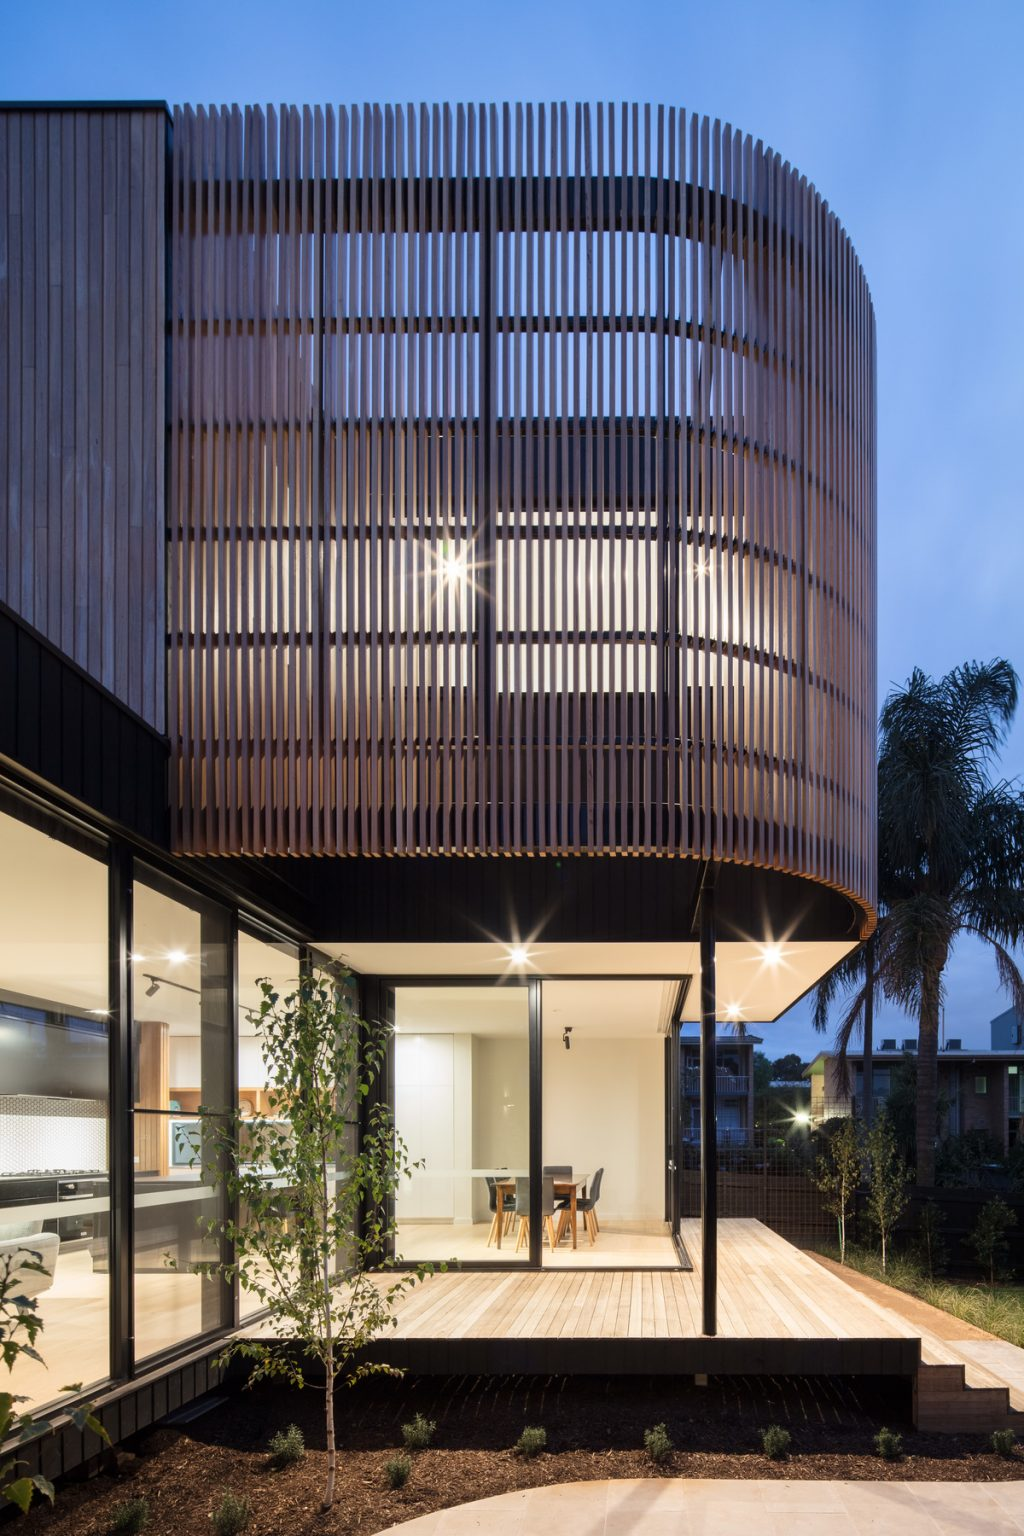 Home Additions: How these Architects Made it Look Easy